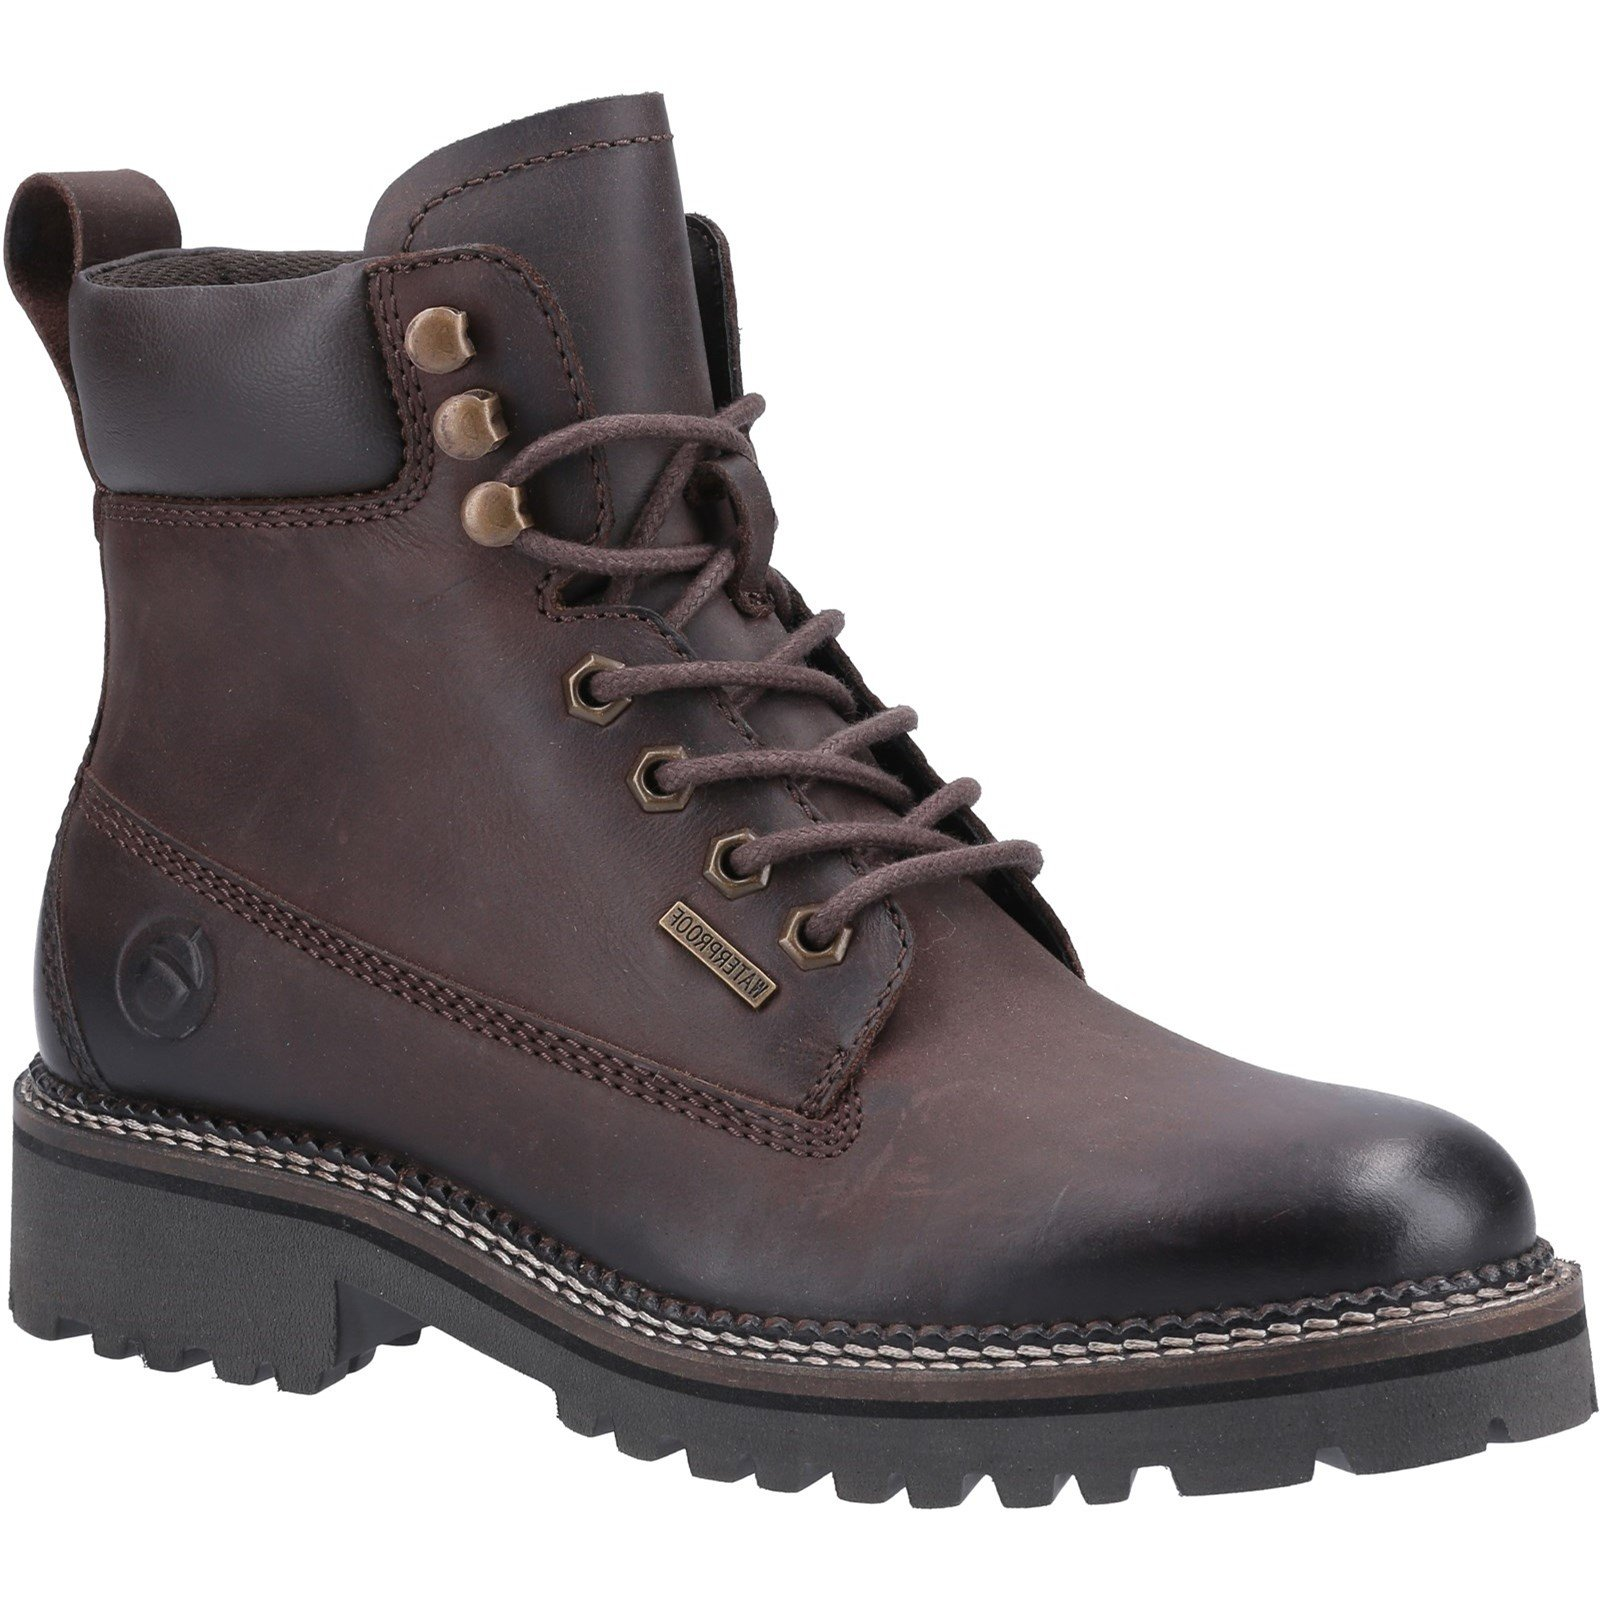 Cotswold Women's Chipping High Top Lace Up Ankle Boot Various Colours 32974 - Brown 8